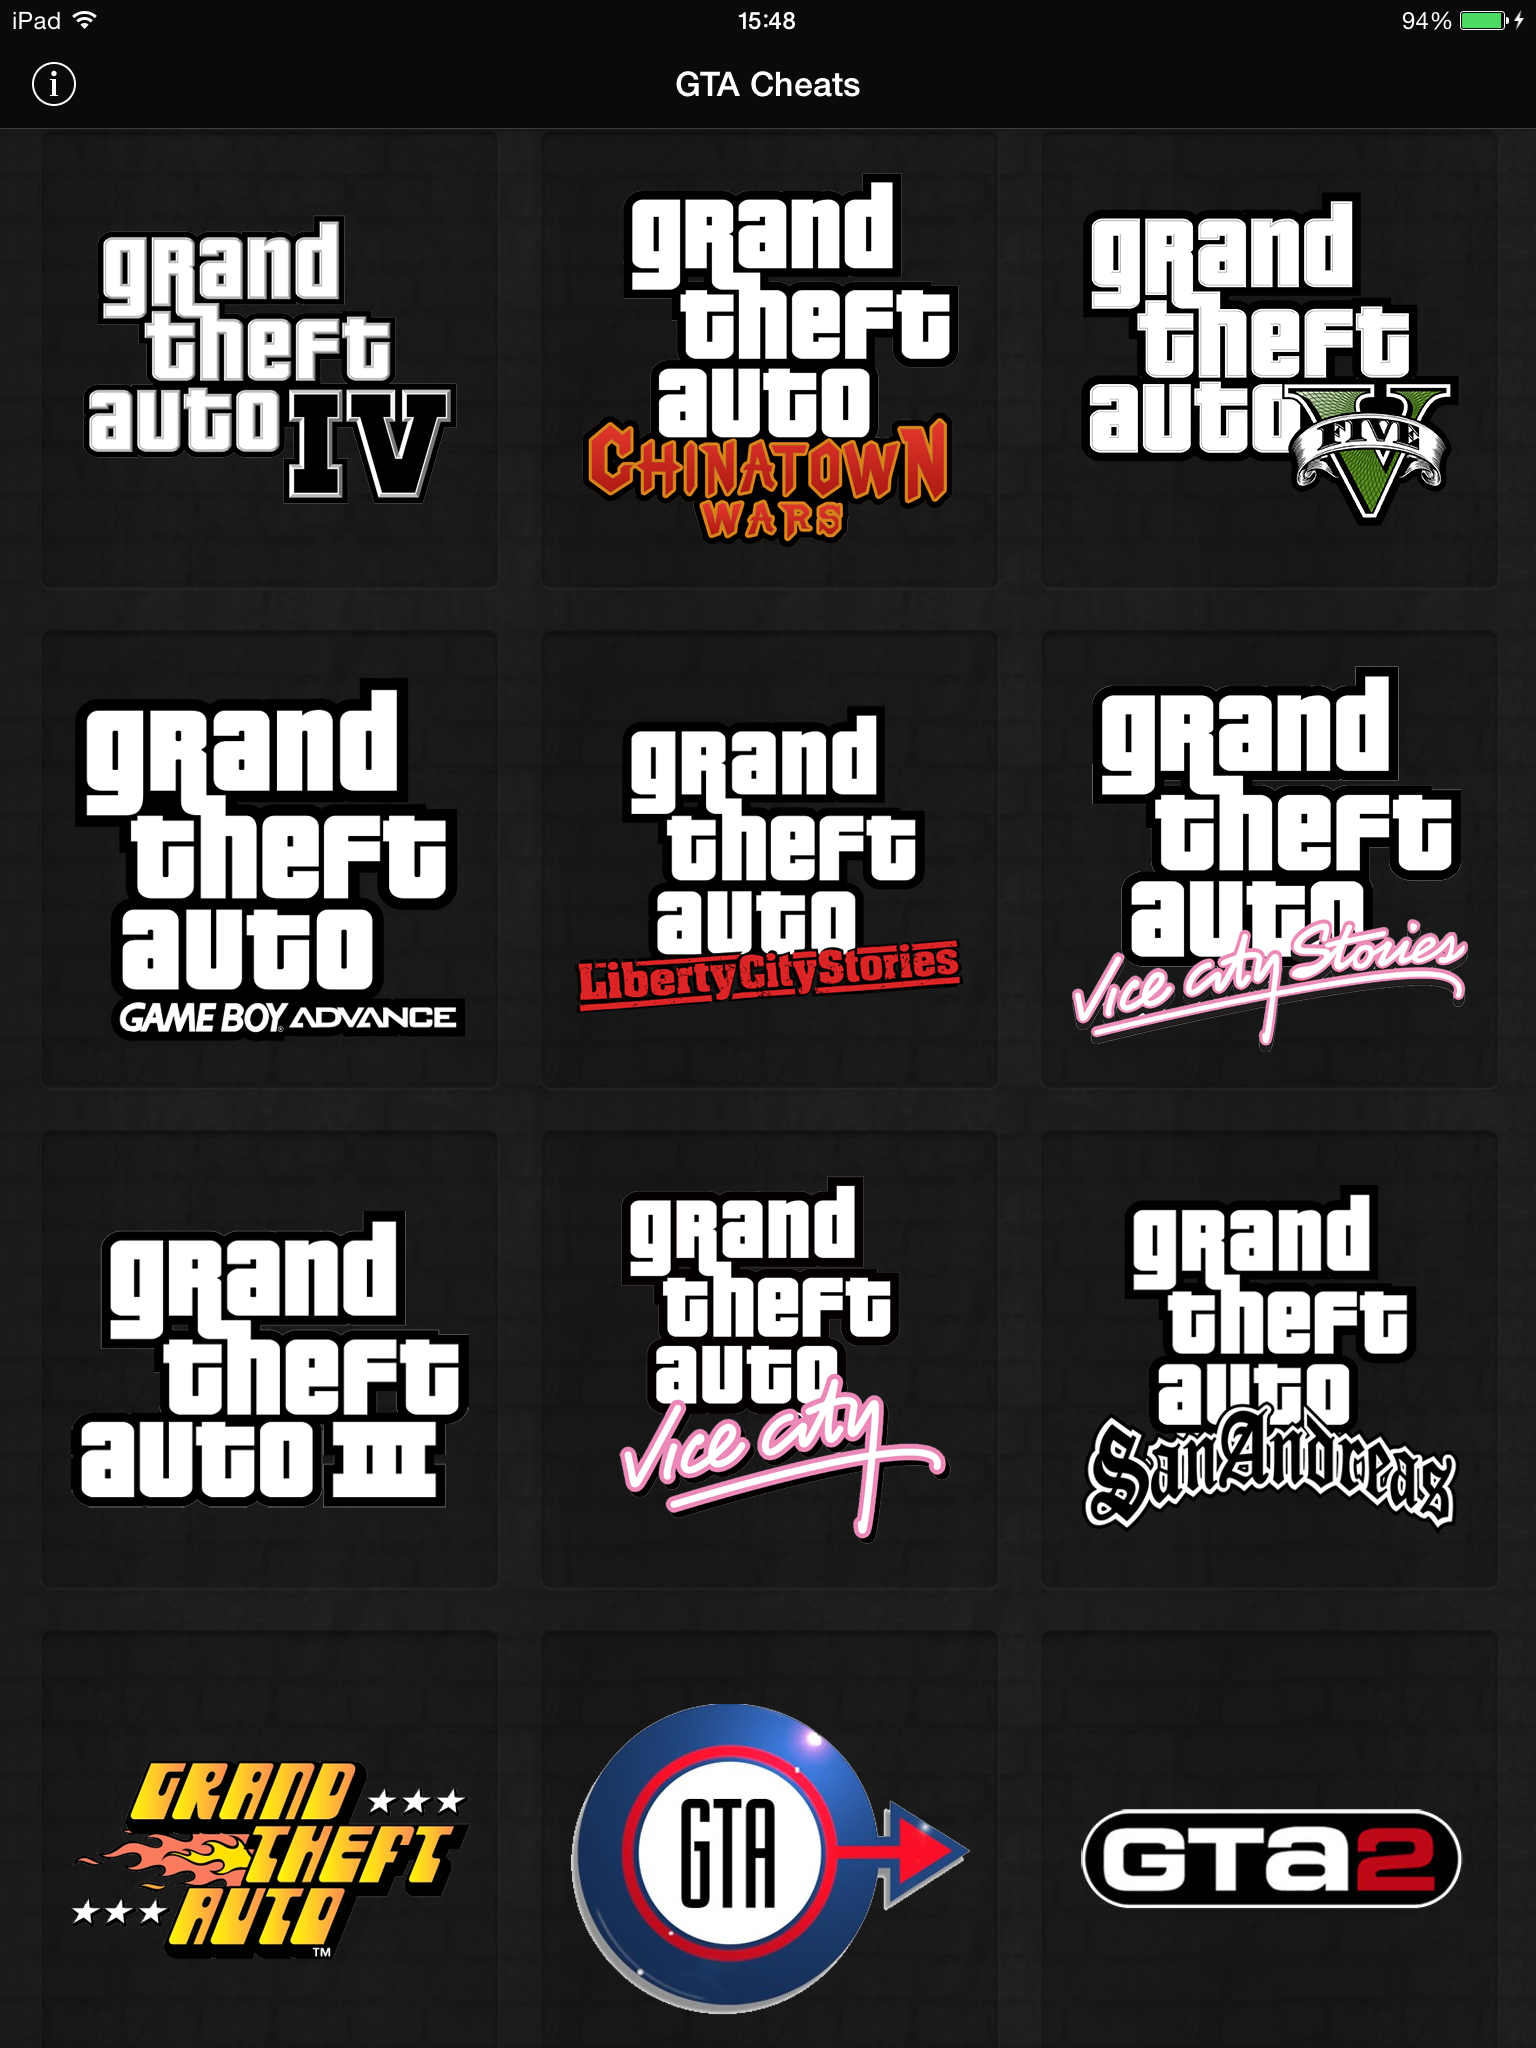 gta liberty city helicopter cheats with How To Activate Cheats In Gta 4 Free Download Programs Download on Wallpaper besides 28134 Fh 1 Hunter besides  furthermore Gta V Cheats For Ps4 Ps3 moreover Gta Tbogt Cheats.